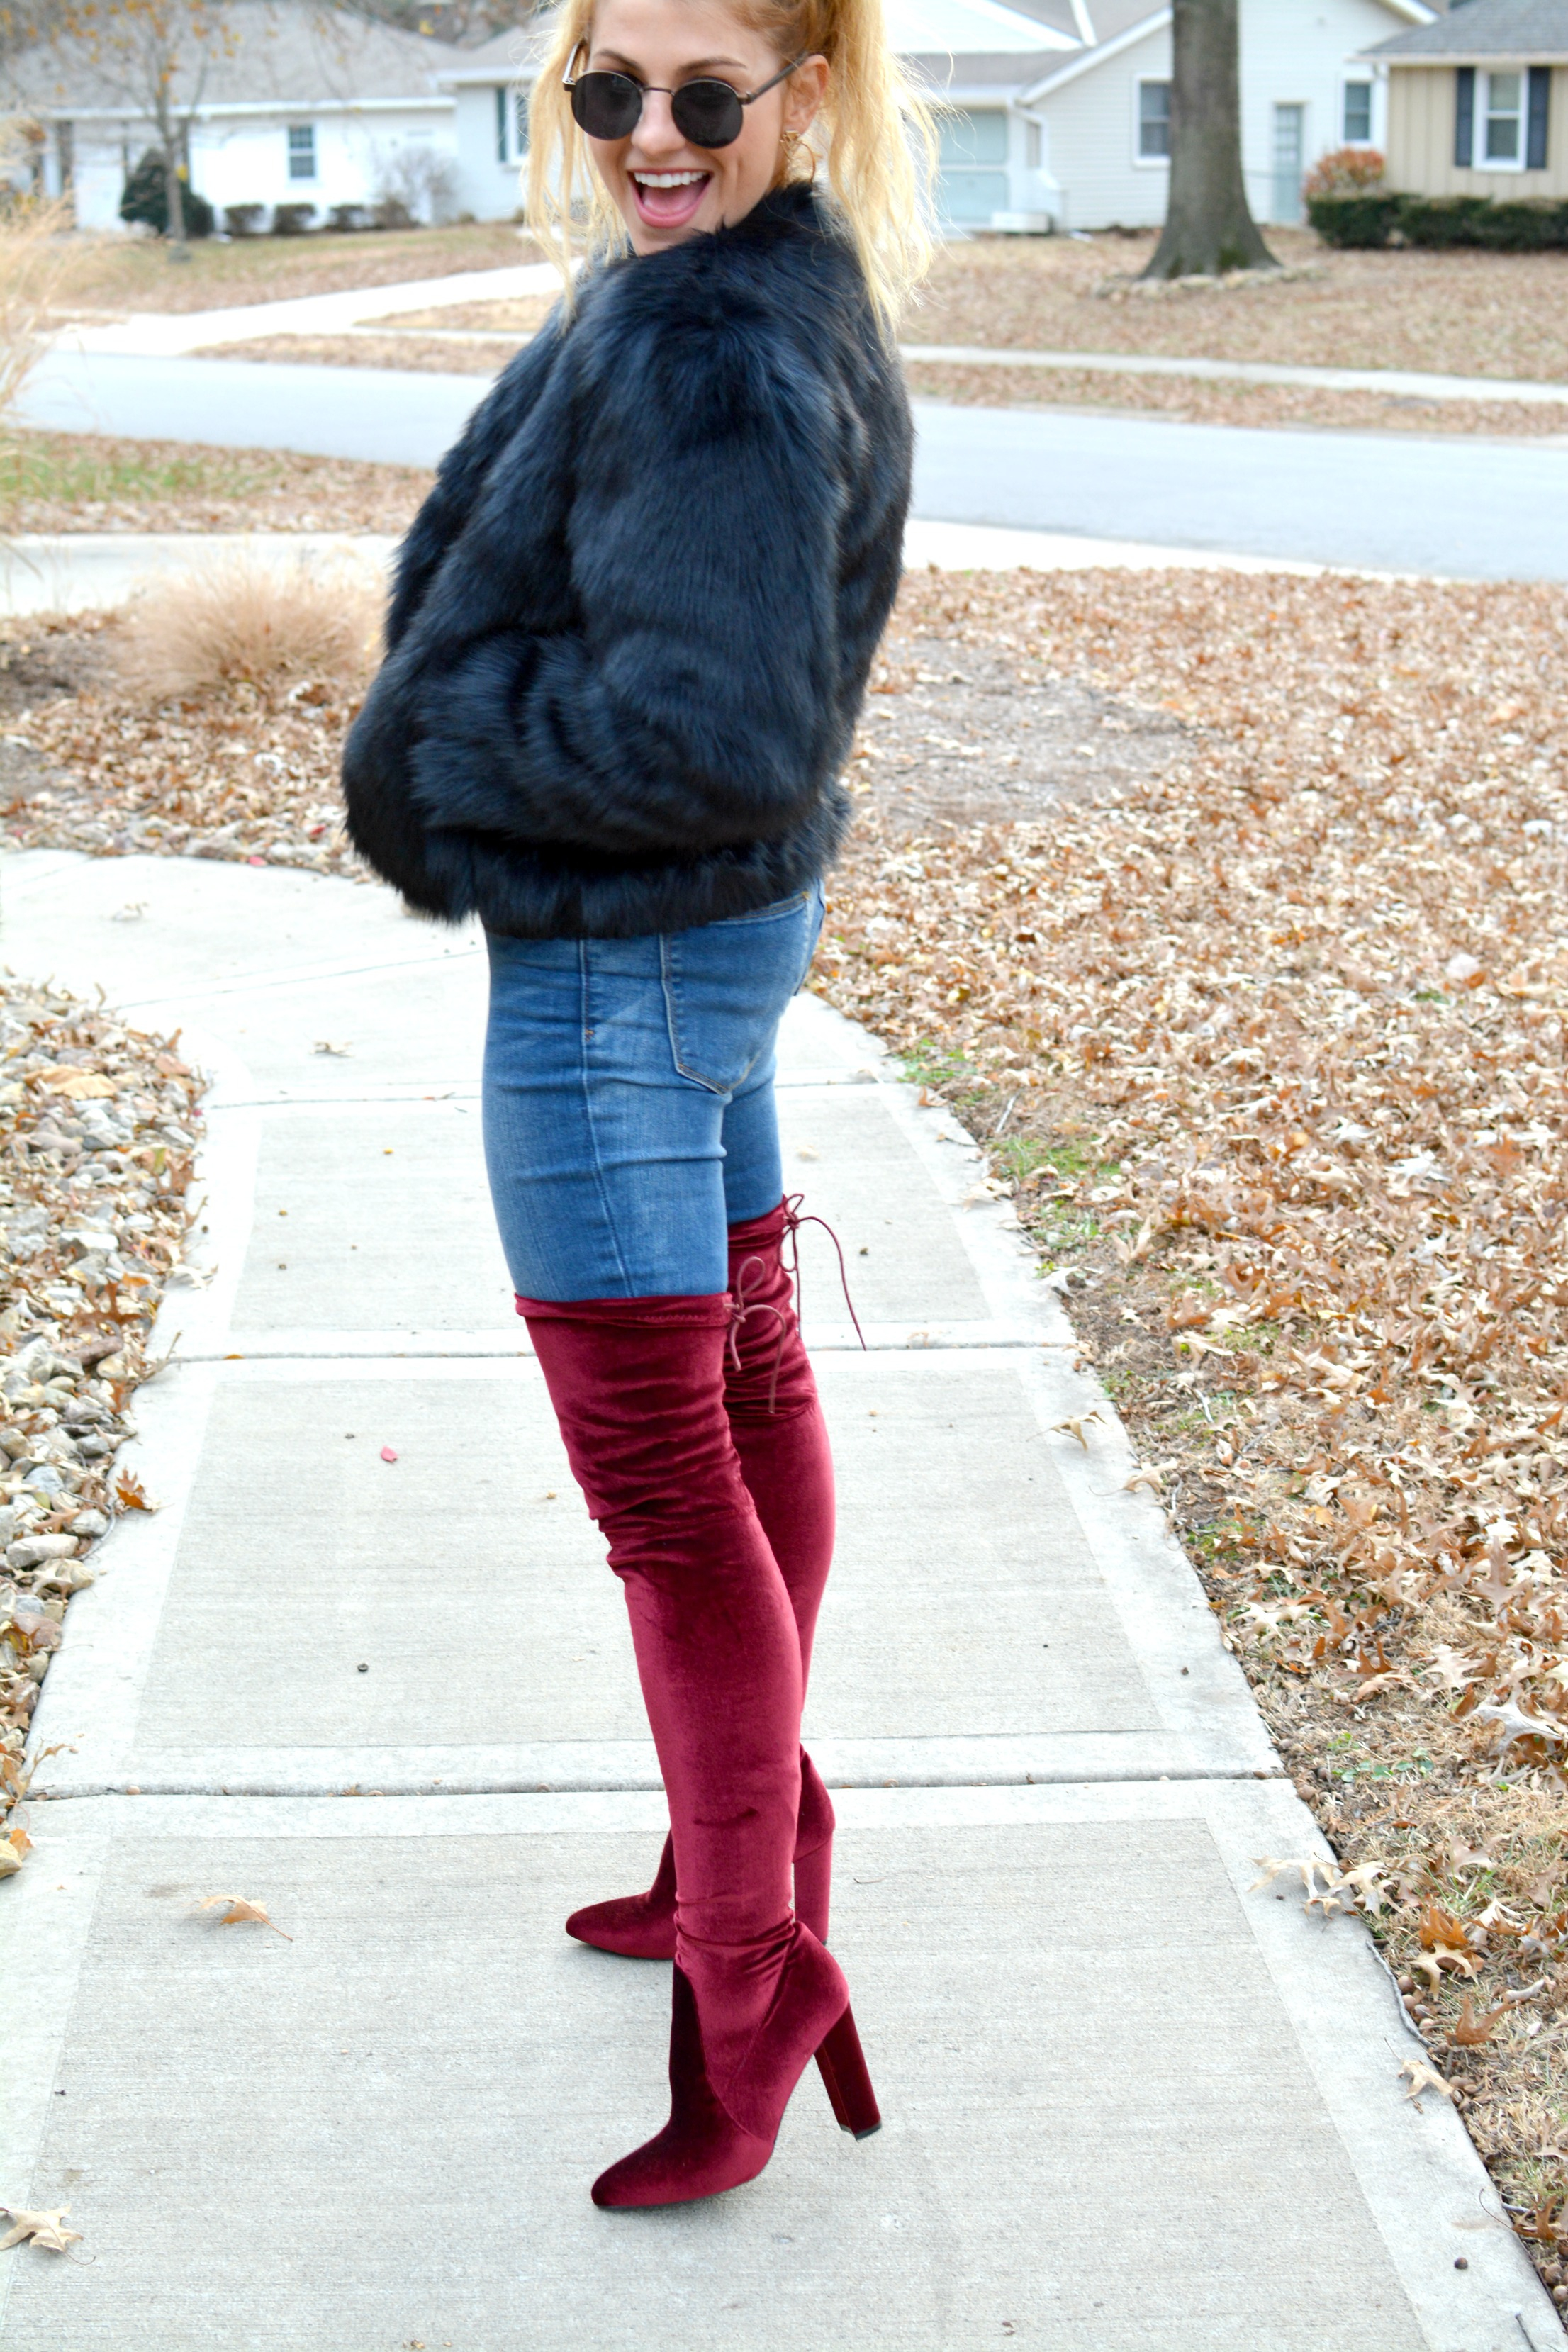 Ashley from LSR in a navy faux fur jacket and burgundy thigh high boots